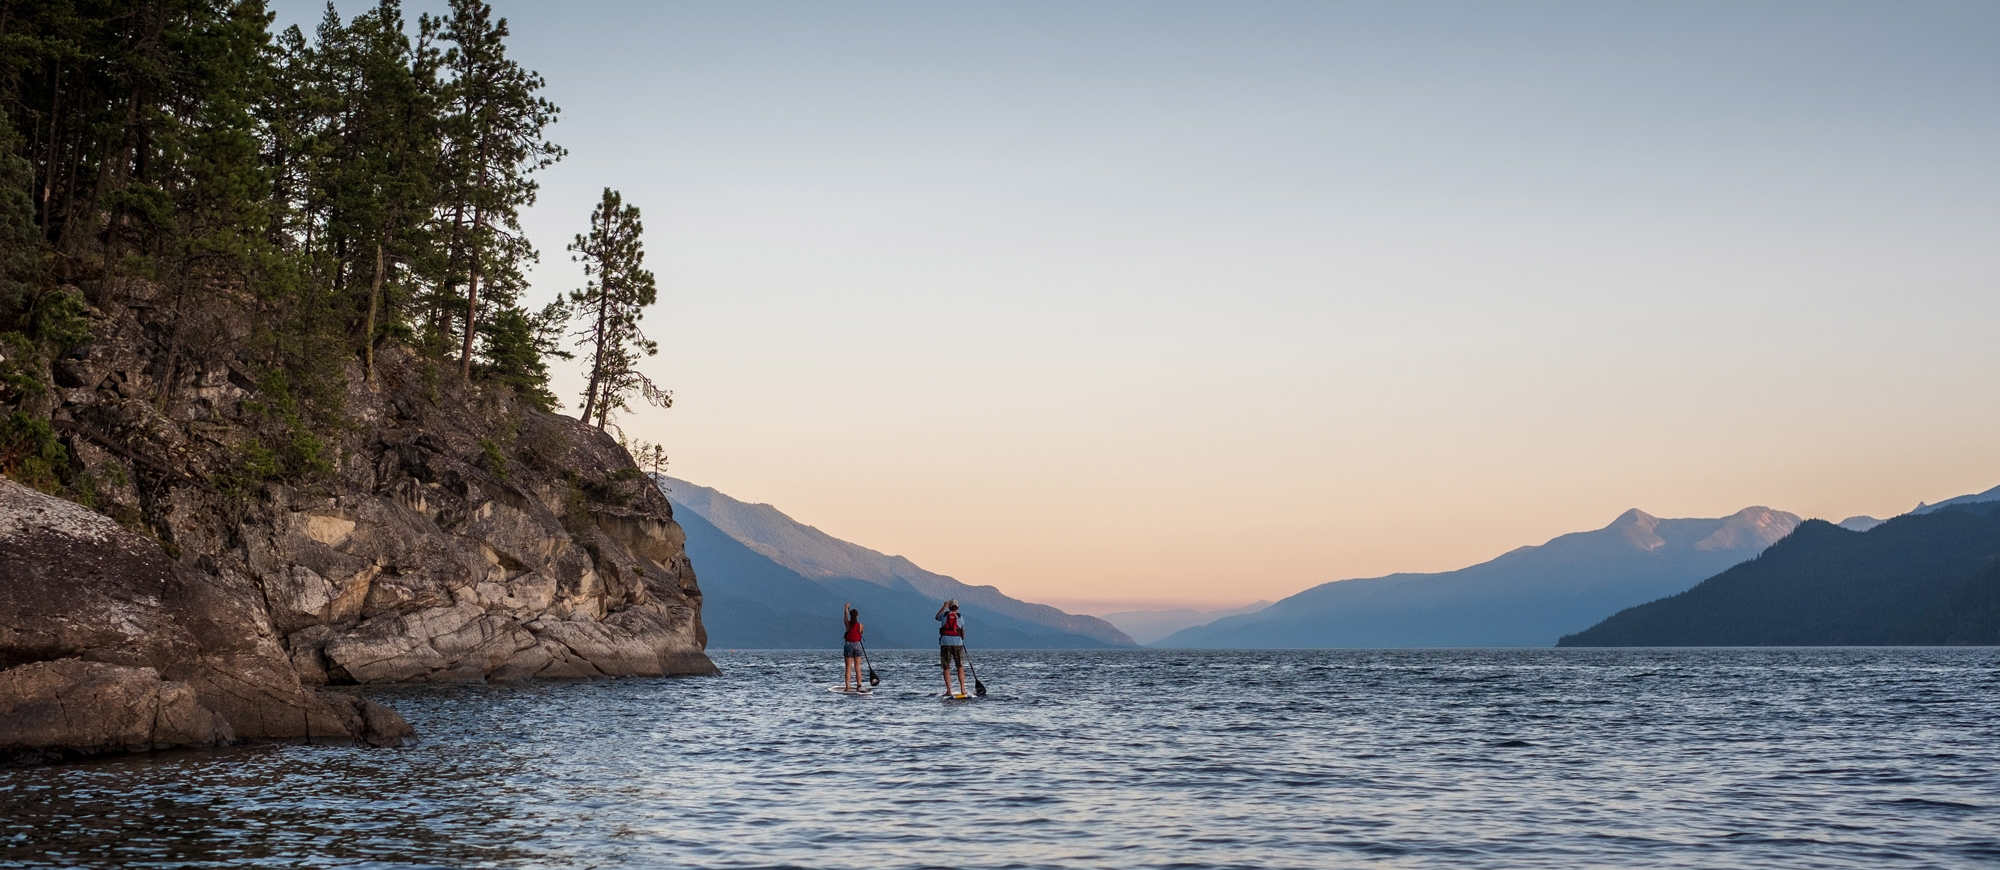 Two stand up paddle boarders on the East Shore of Kootenay Lake, BC.